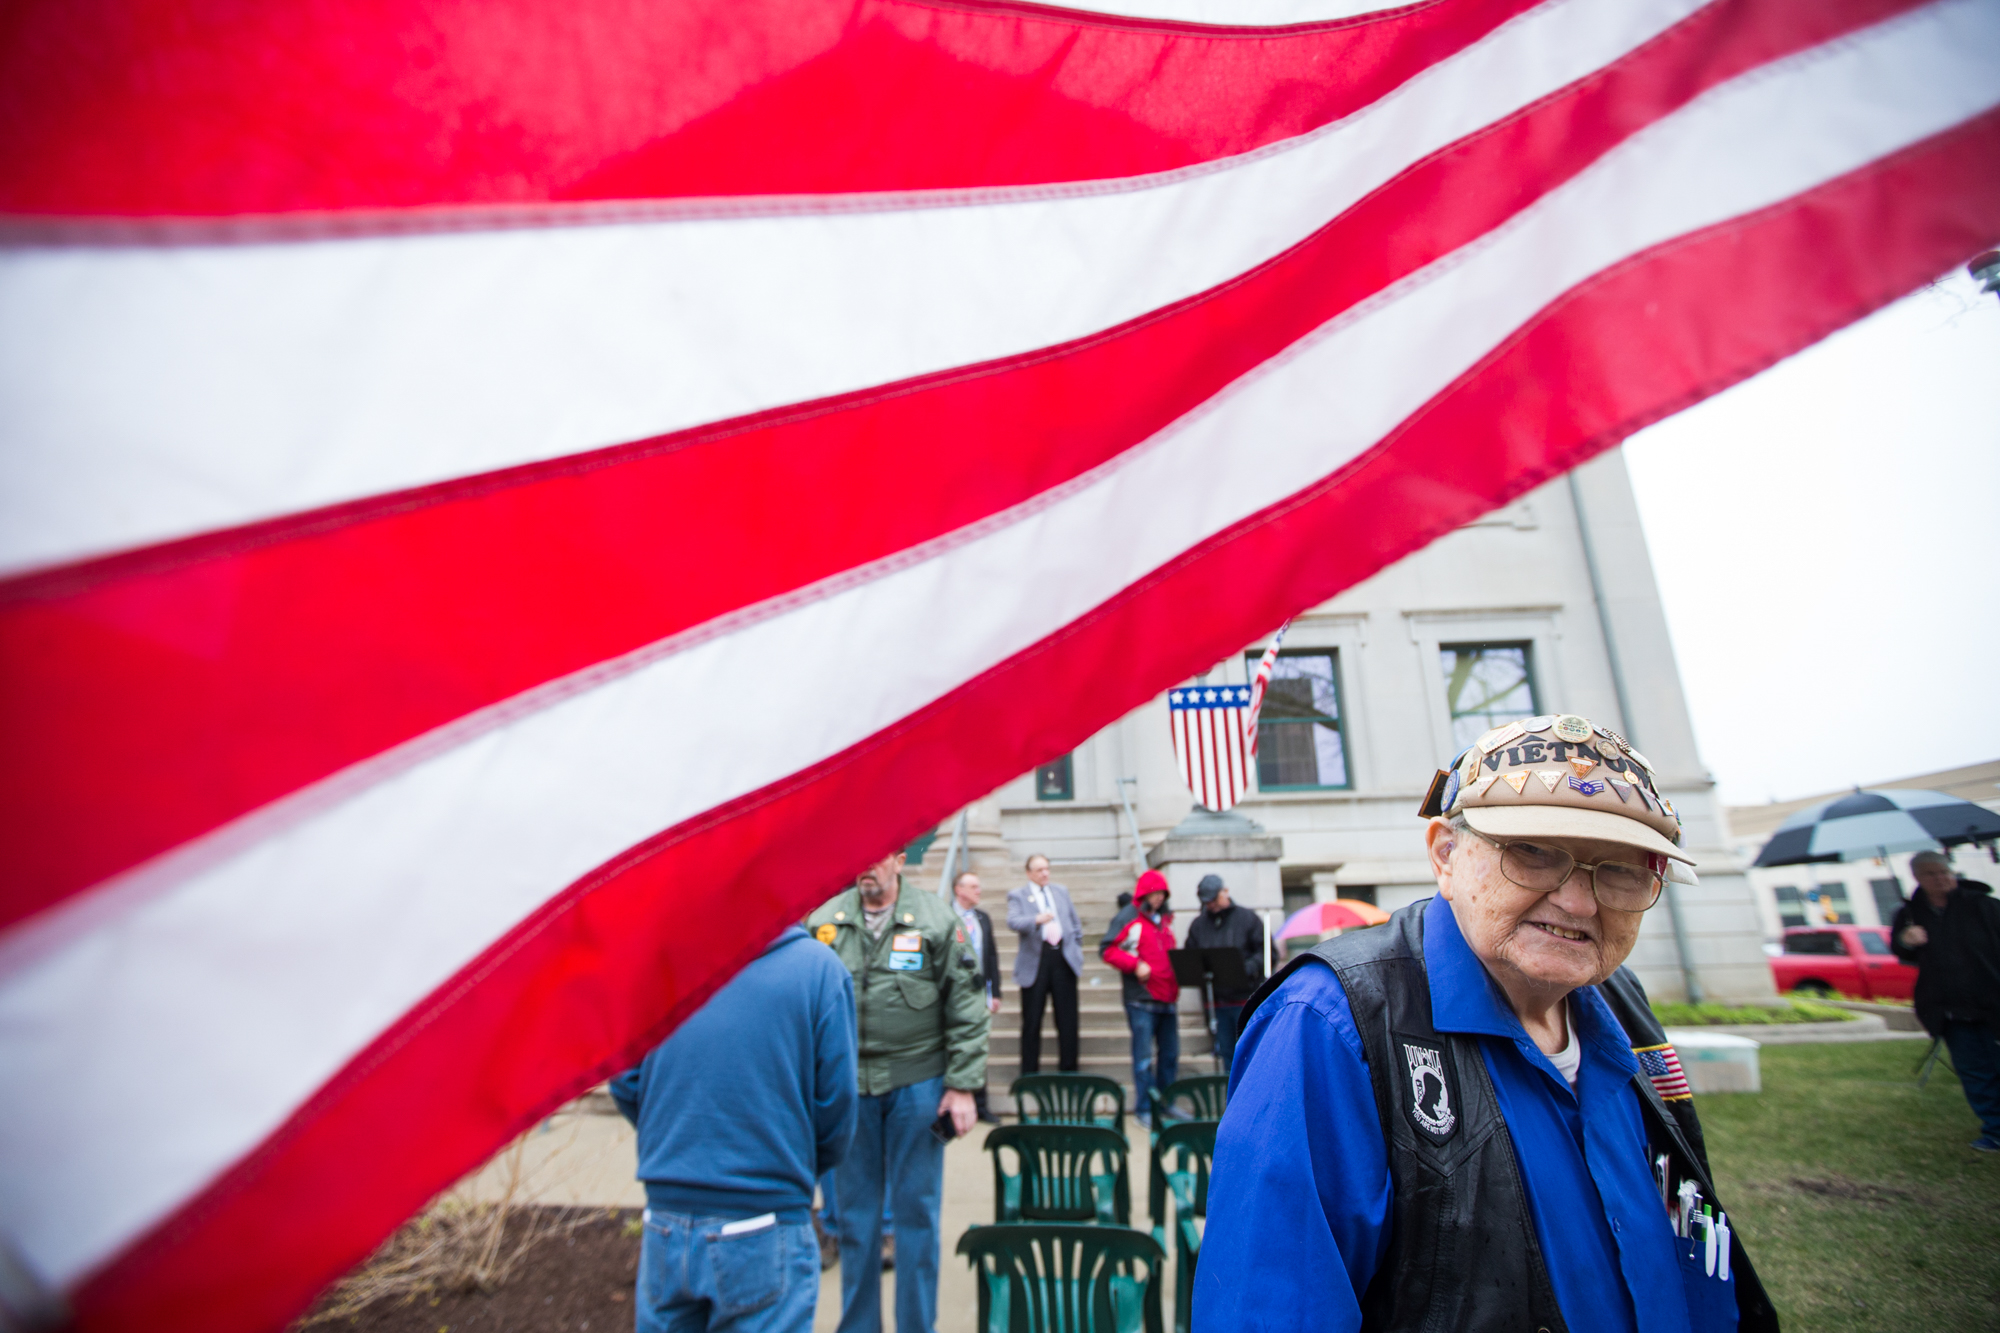 Army veteran Gerald Van Alstyne, whose great grandfather helped build the Veterans Memorial Hall here, attends the unveiling of the Glory Truck on Saturday, April 21, 2018, at Veterans Memorial Hall in Rockford. [SCOTT P. YATES/RRSTAR.COM STAFF]